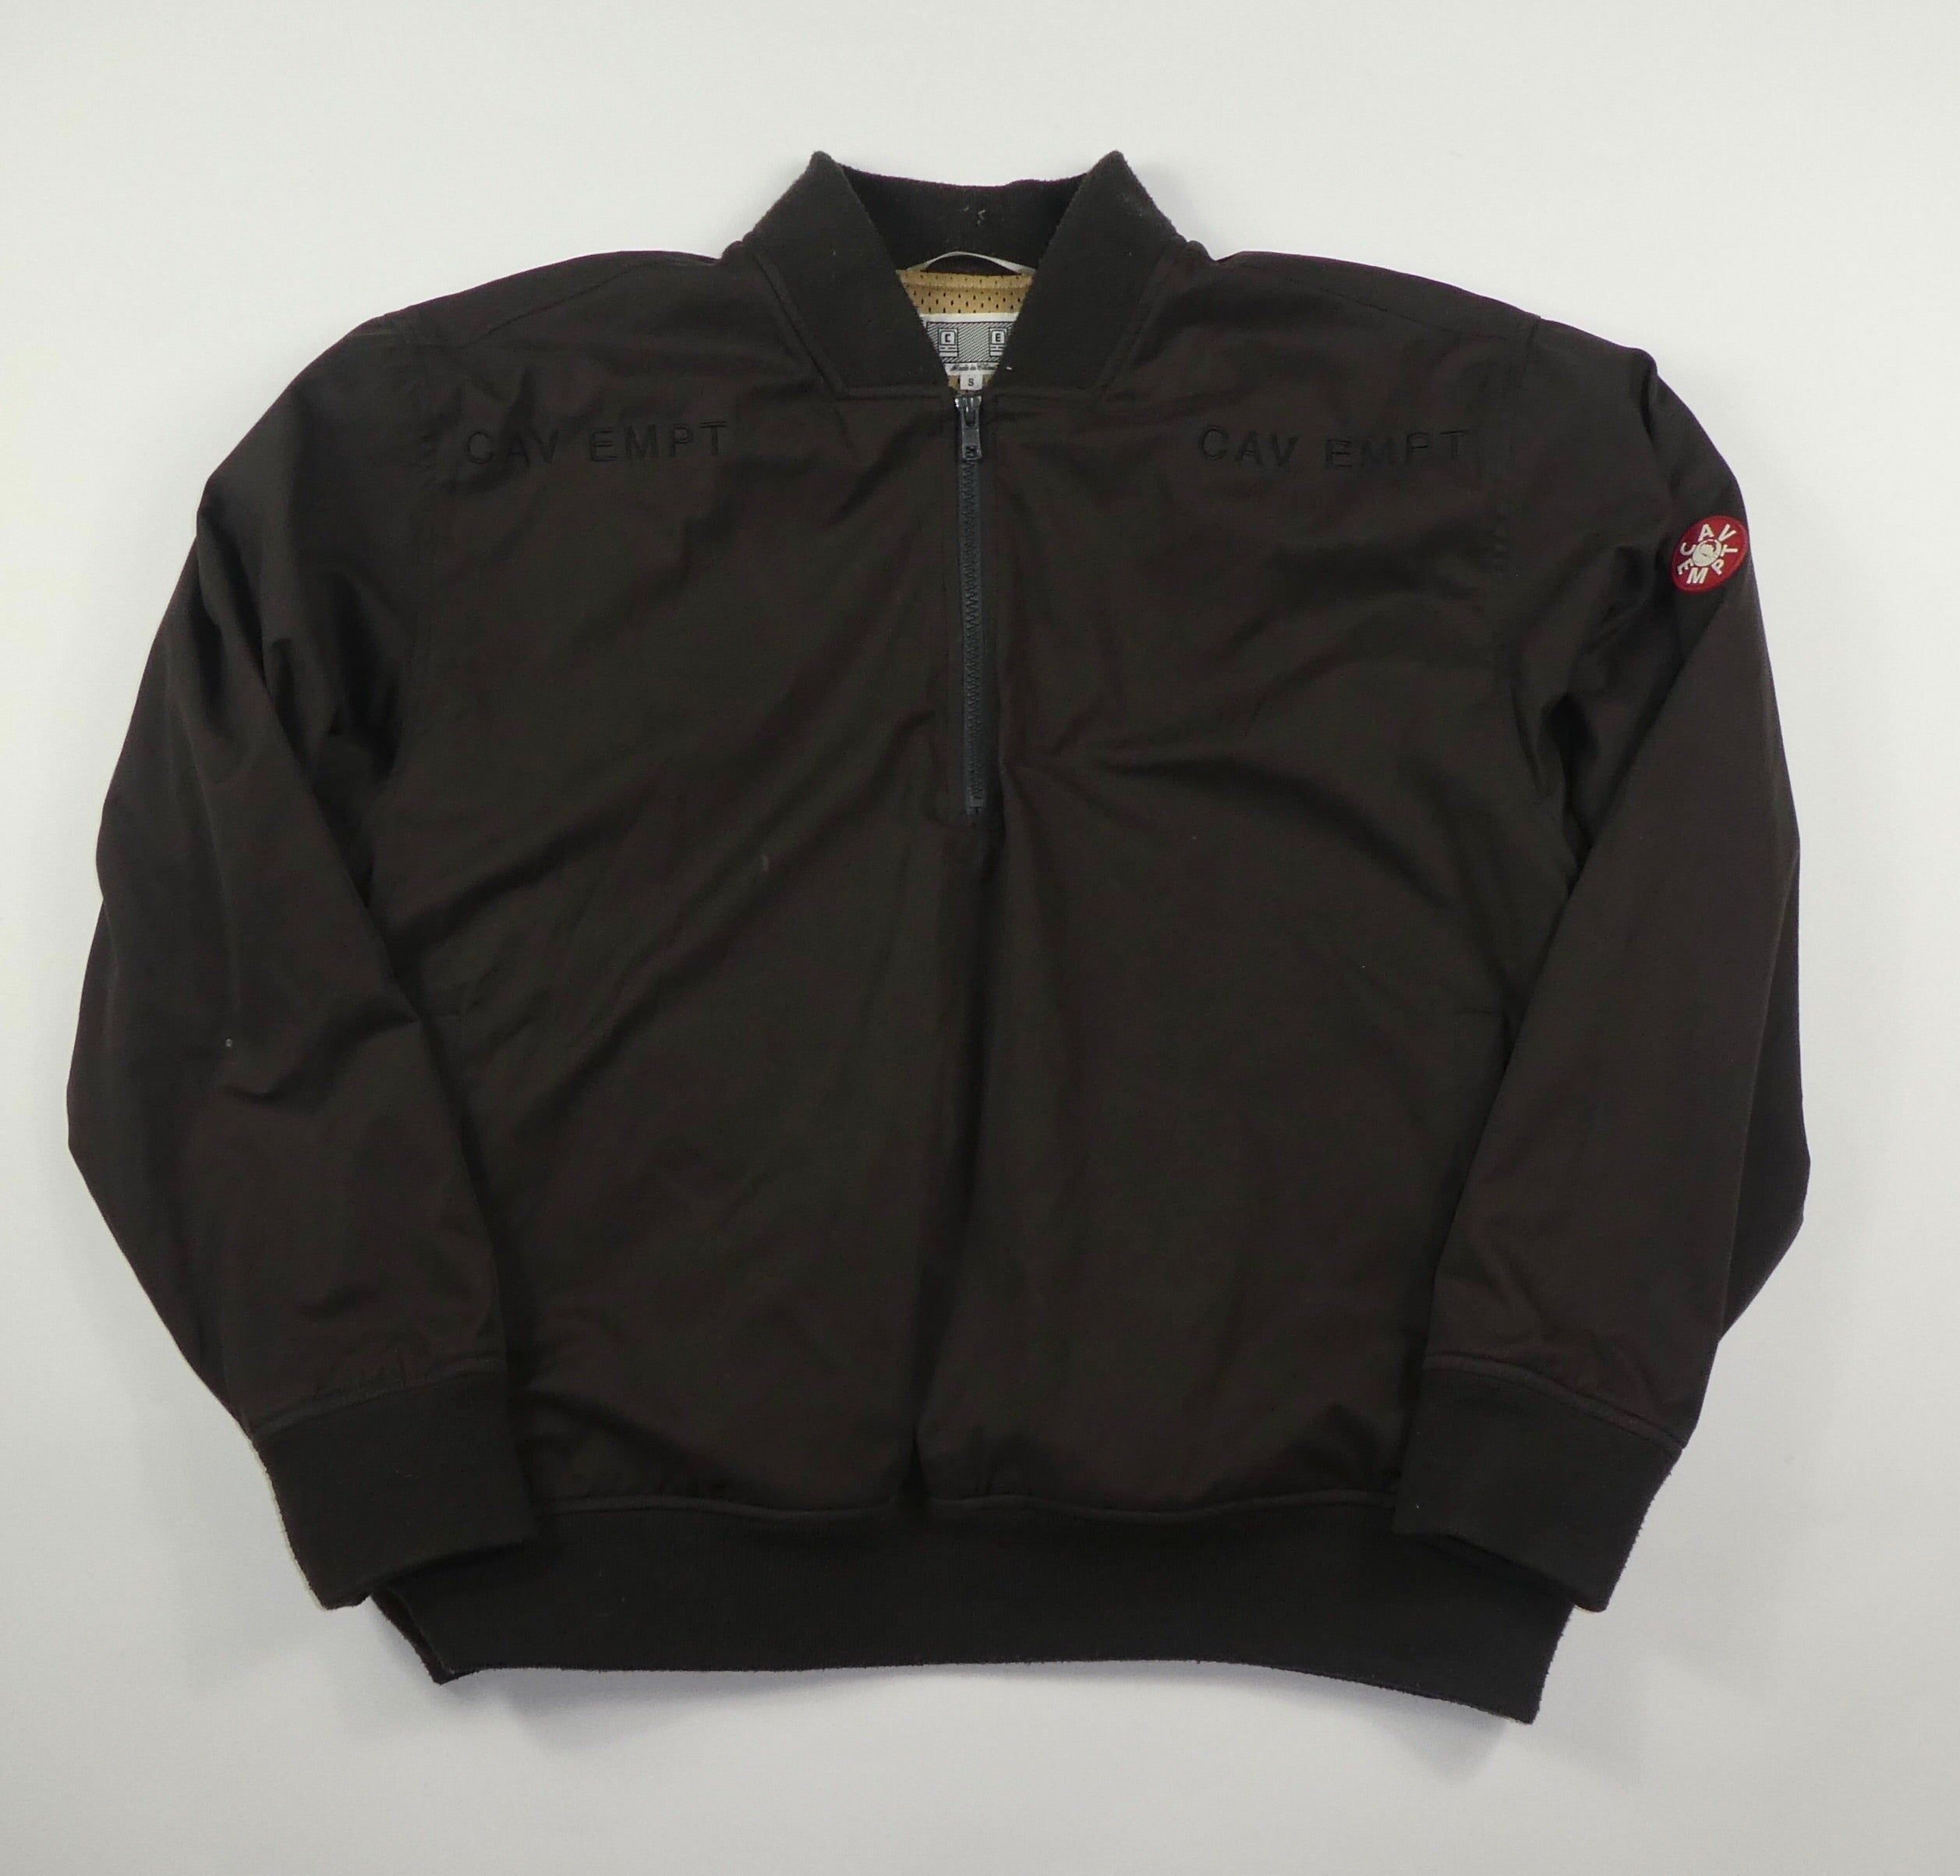 Cav Empt Half Zip Bomber Jacket - Small